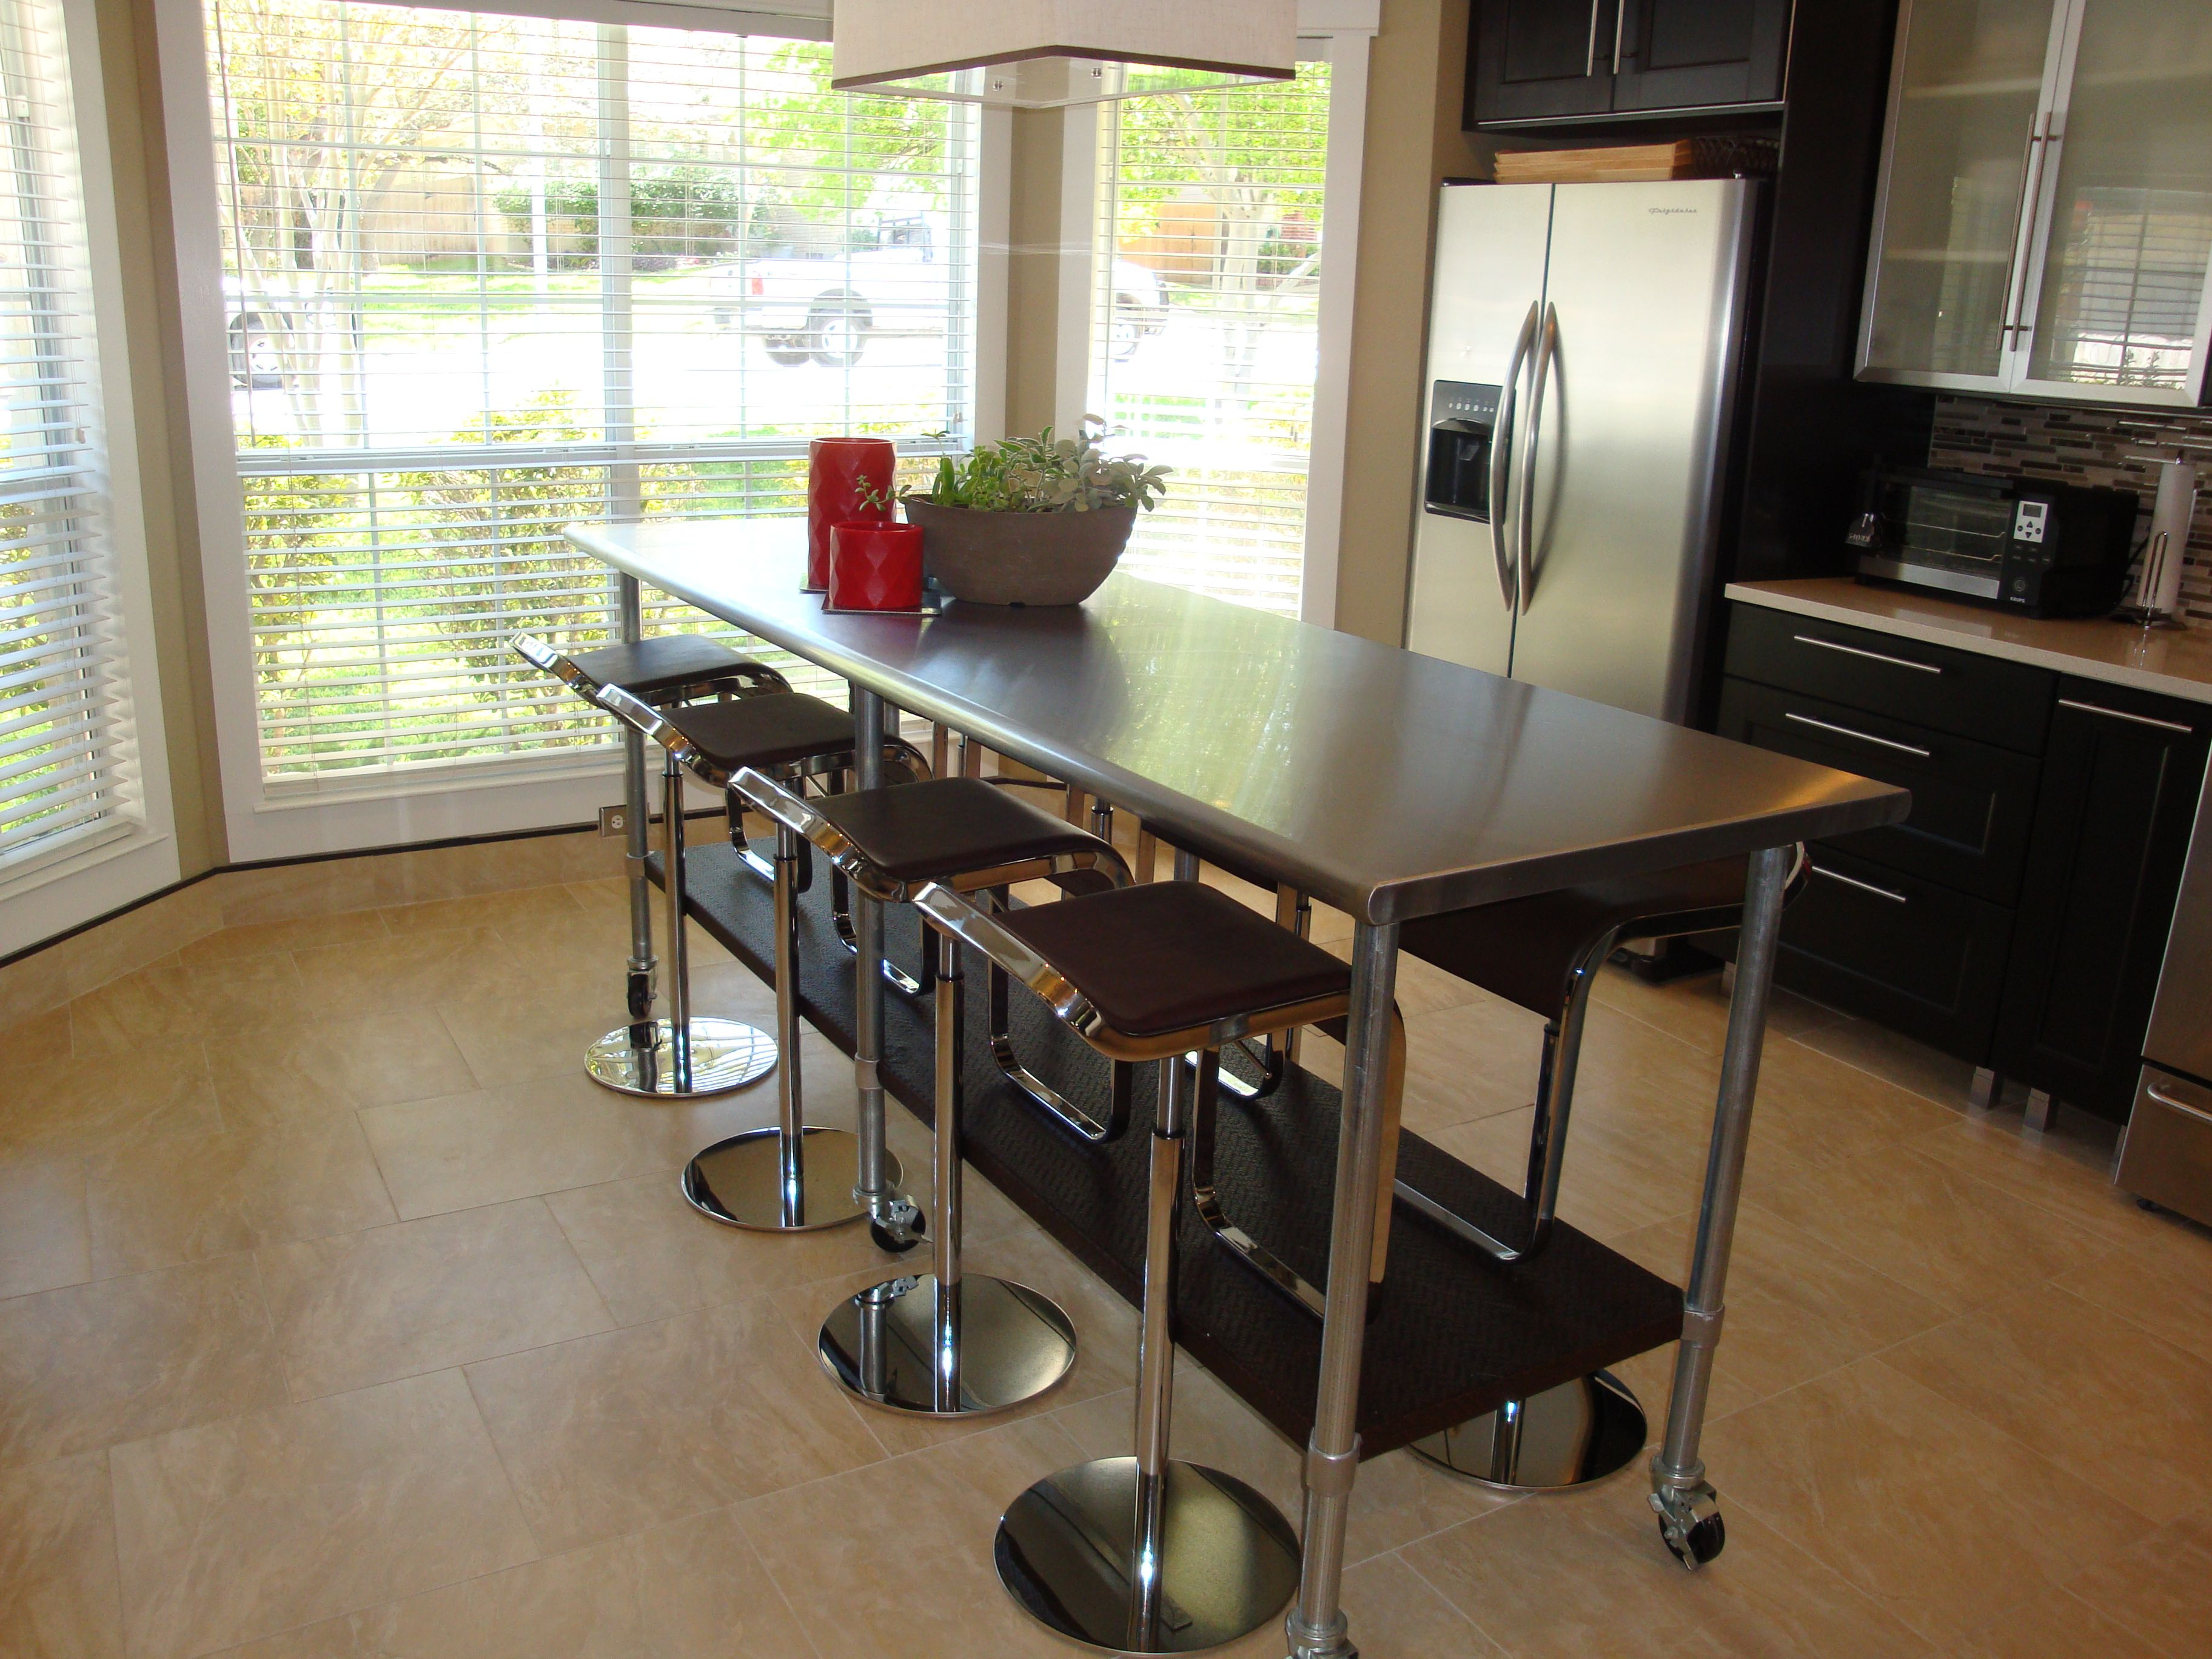 Kitchen Island And Table Snaking A Drain We 39ve Had This For Few Years